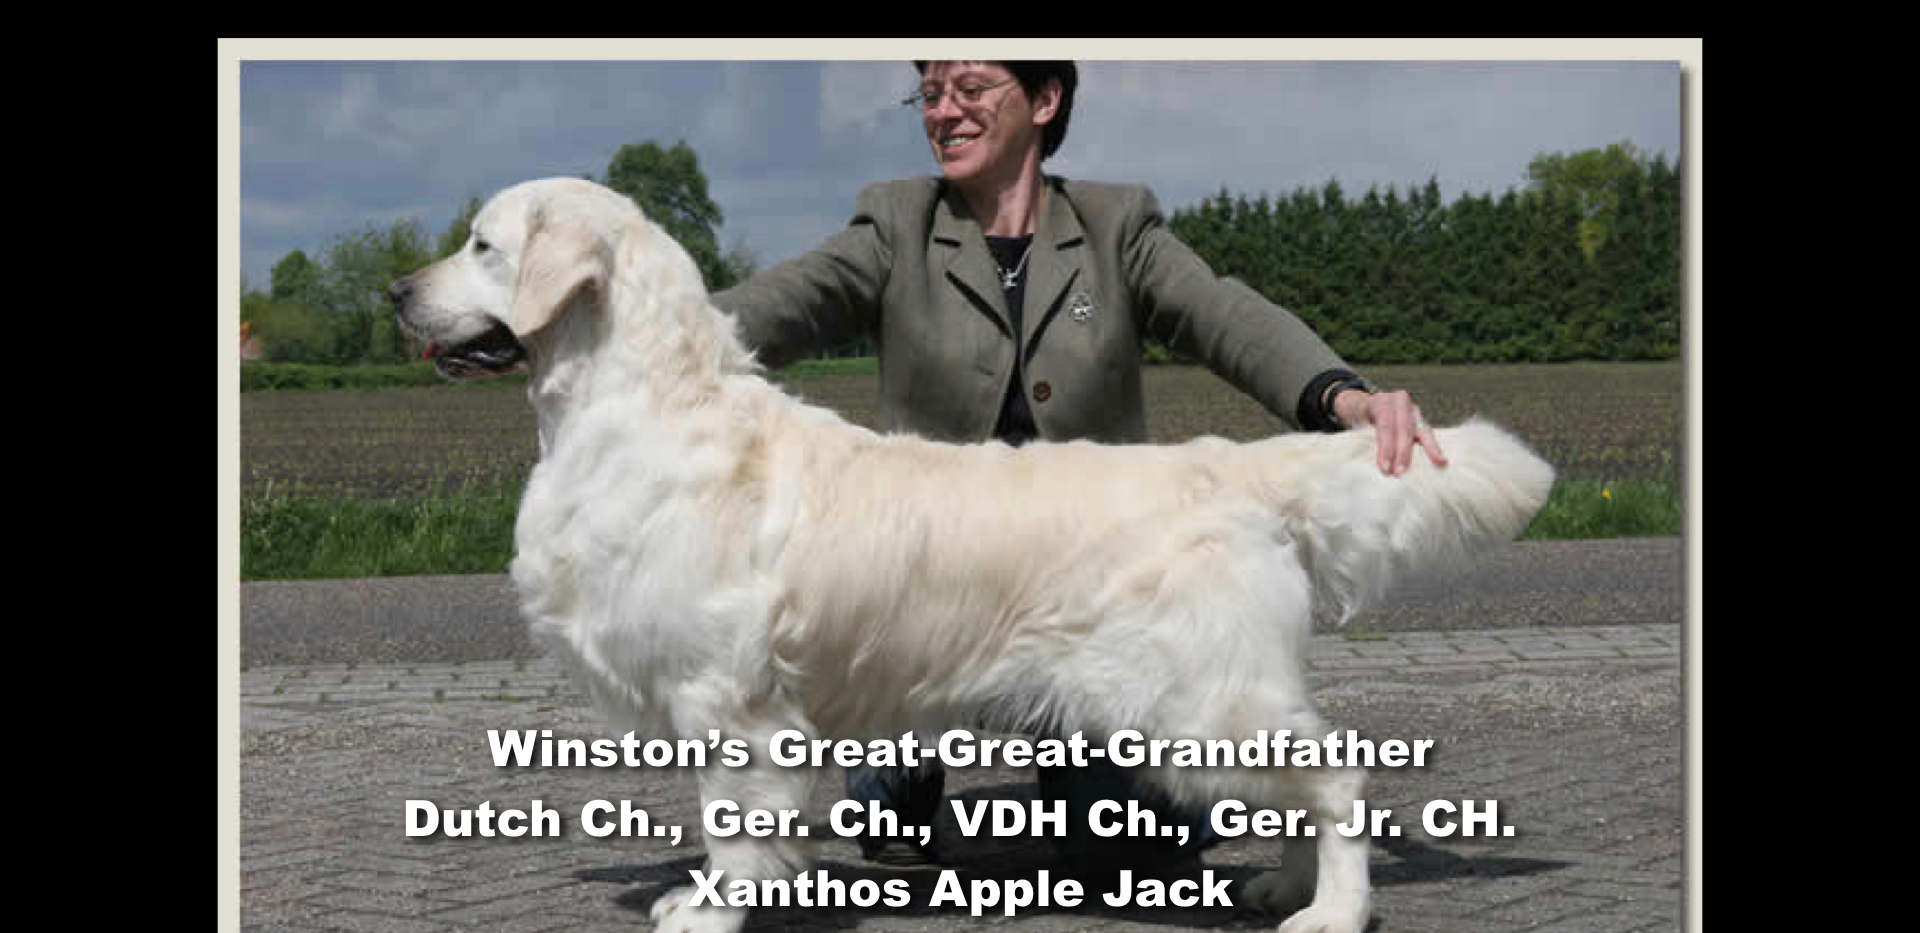 Winston-Pictoral Pedigree.009.jpeg